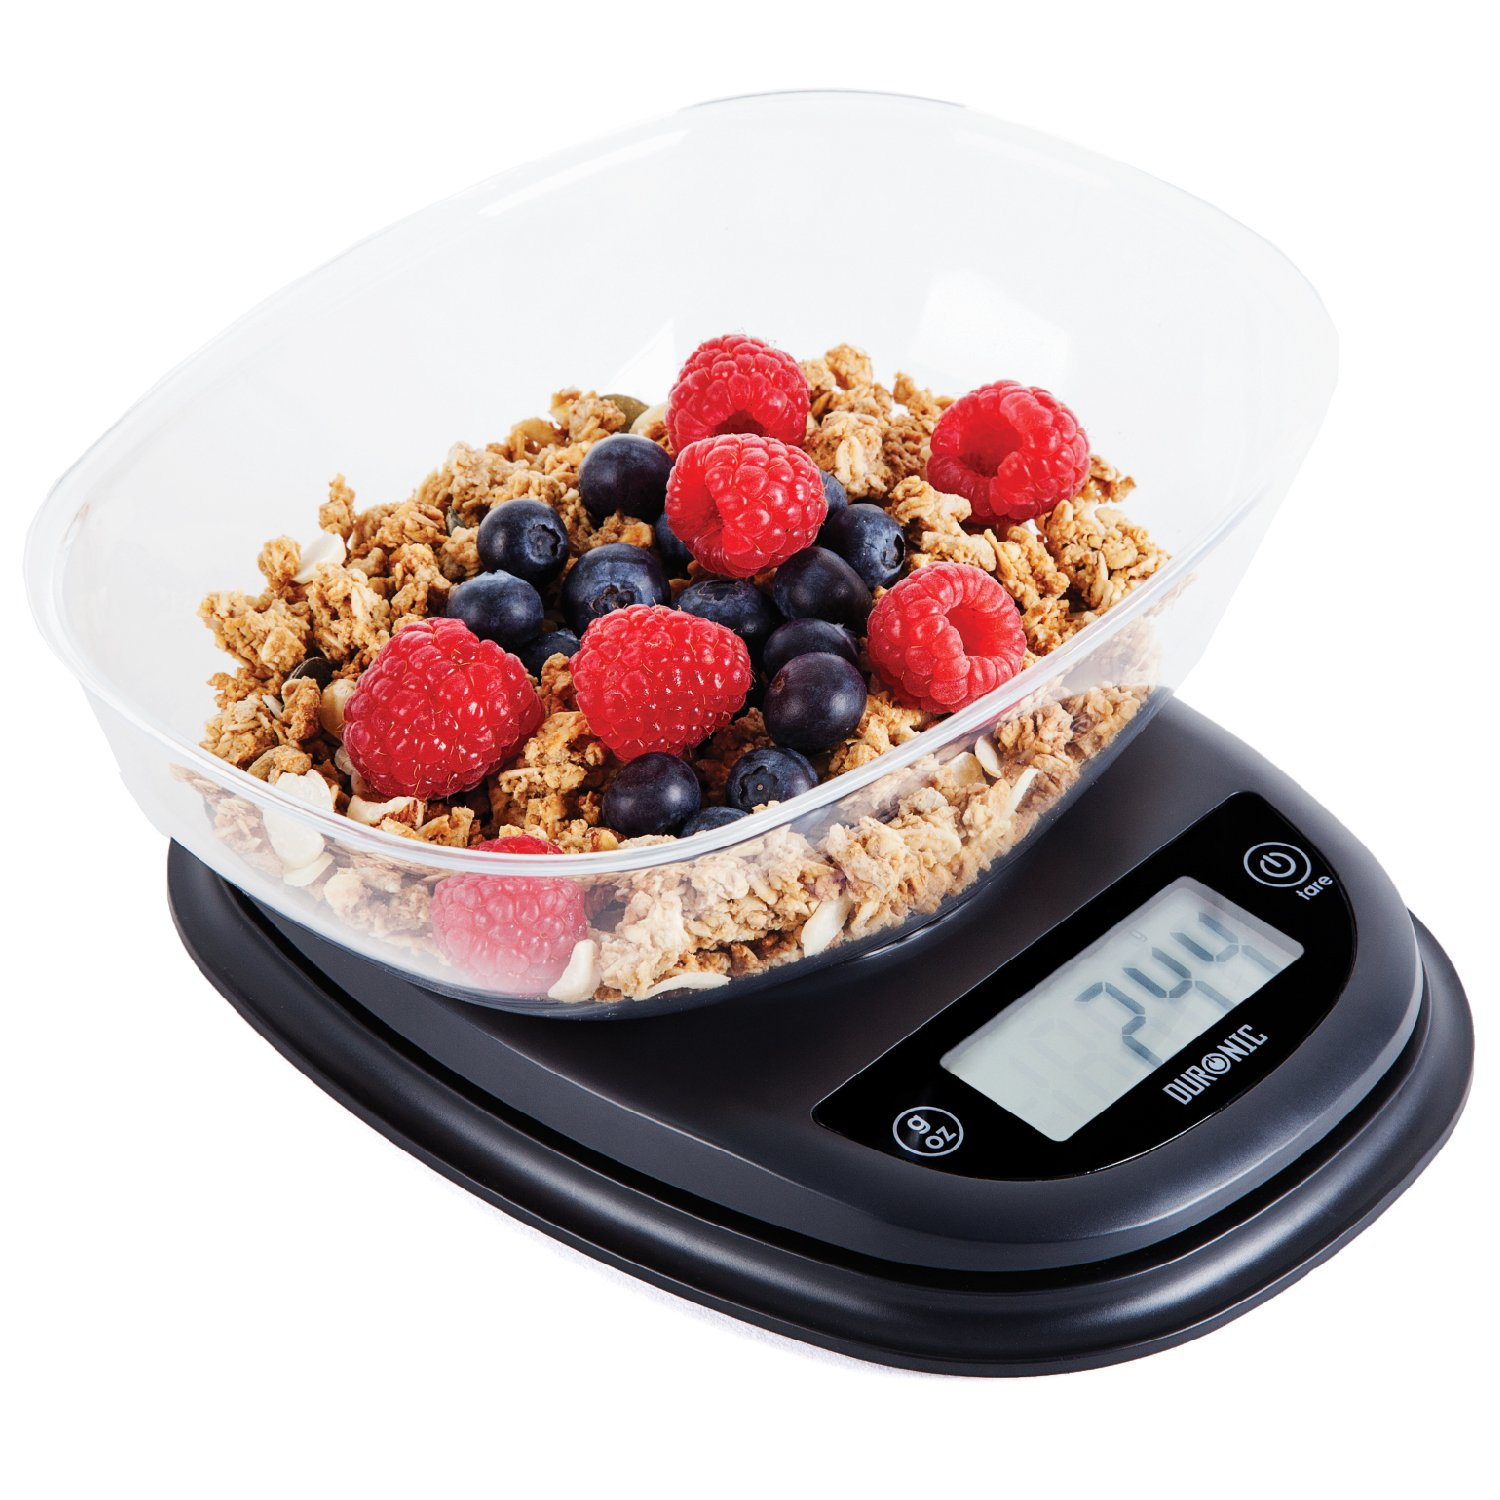 Duronic Kitchen Scale KS2000 5KG Oval Digital Display Kitchen Scales with Clear Mixing Bowl | Postal Scale Capacity: 5kg / 11lb